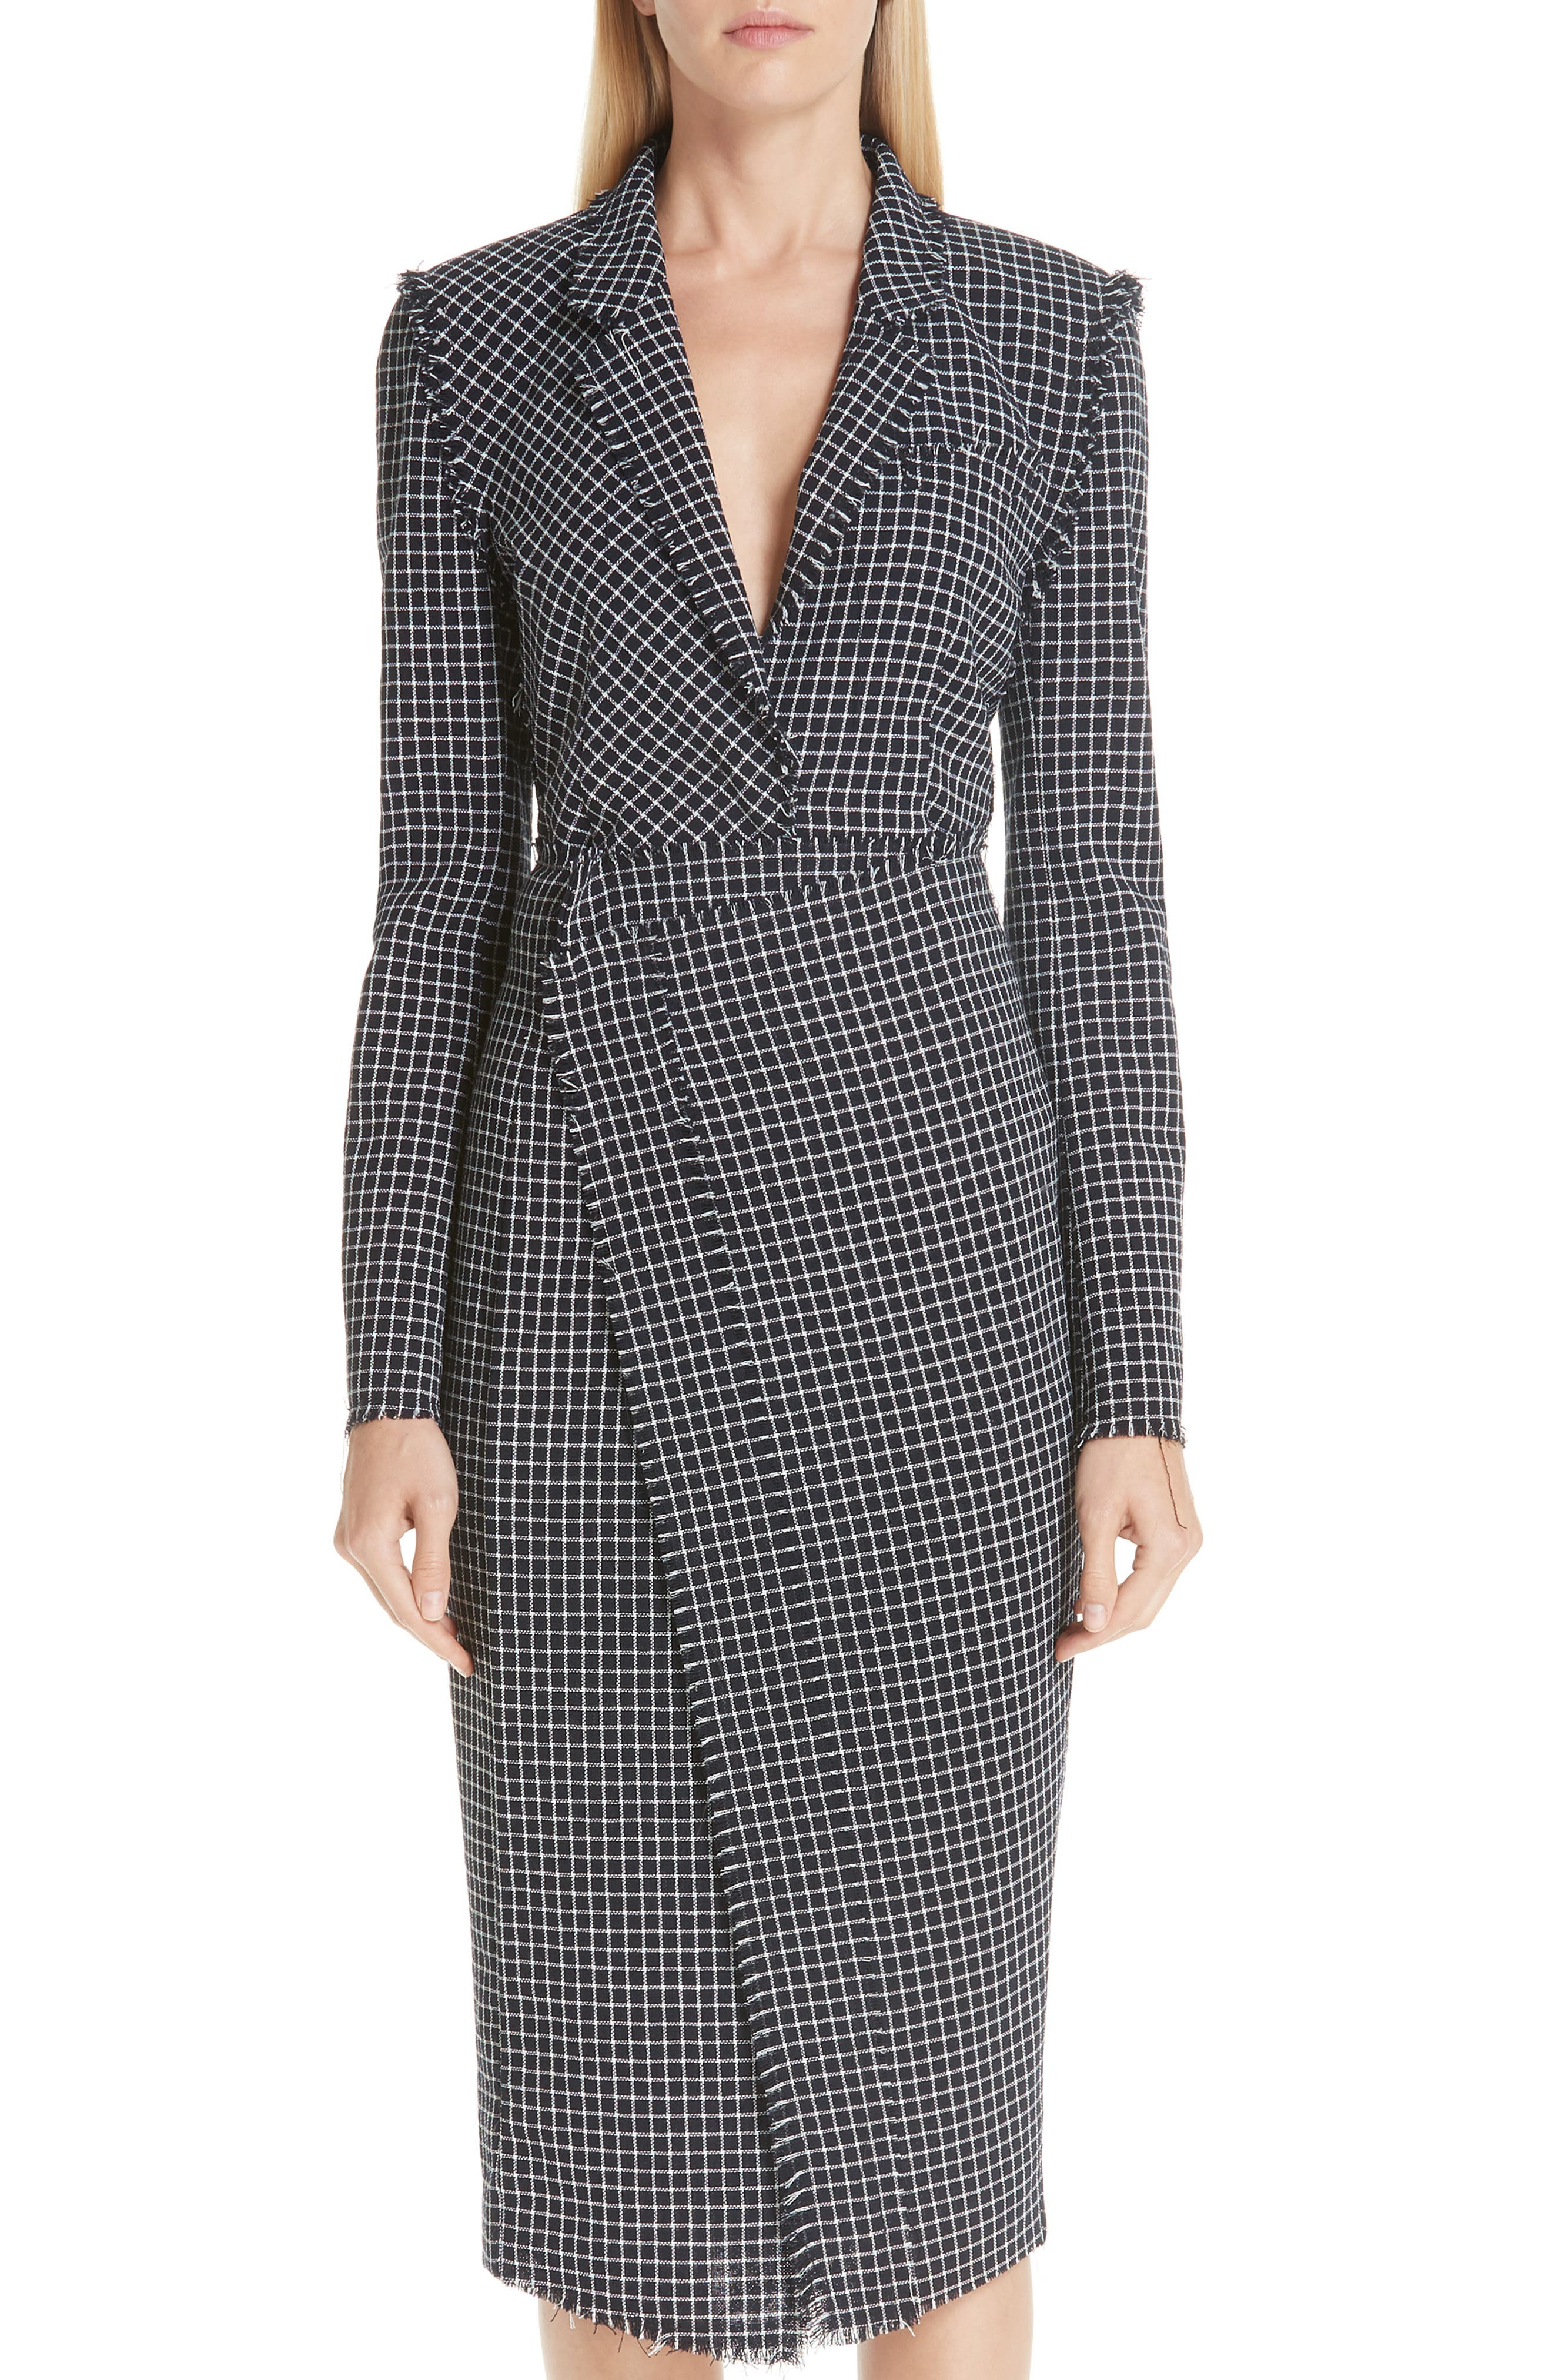 JASON WU COLLECTION,                             Wool Check Skirt,                             Alternate thumbnail 7, color,                             001